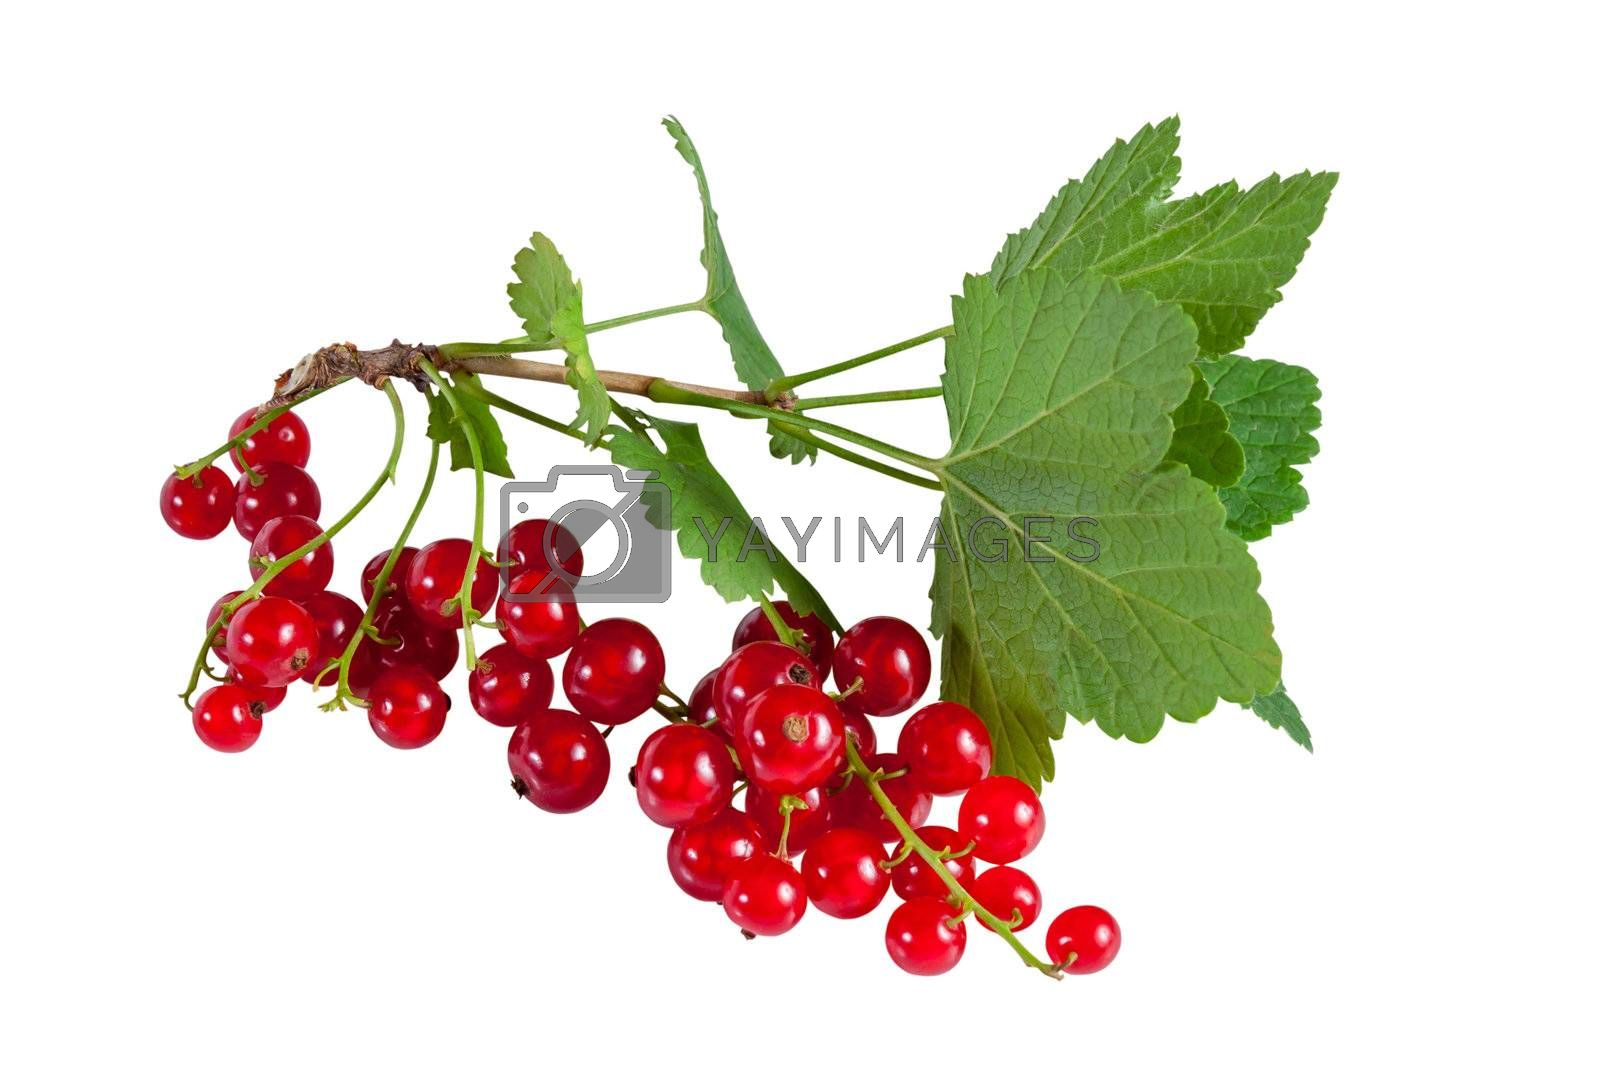 Branch of berry red currants with leaves isolated on a white background